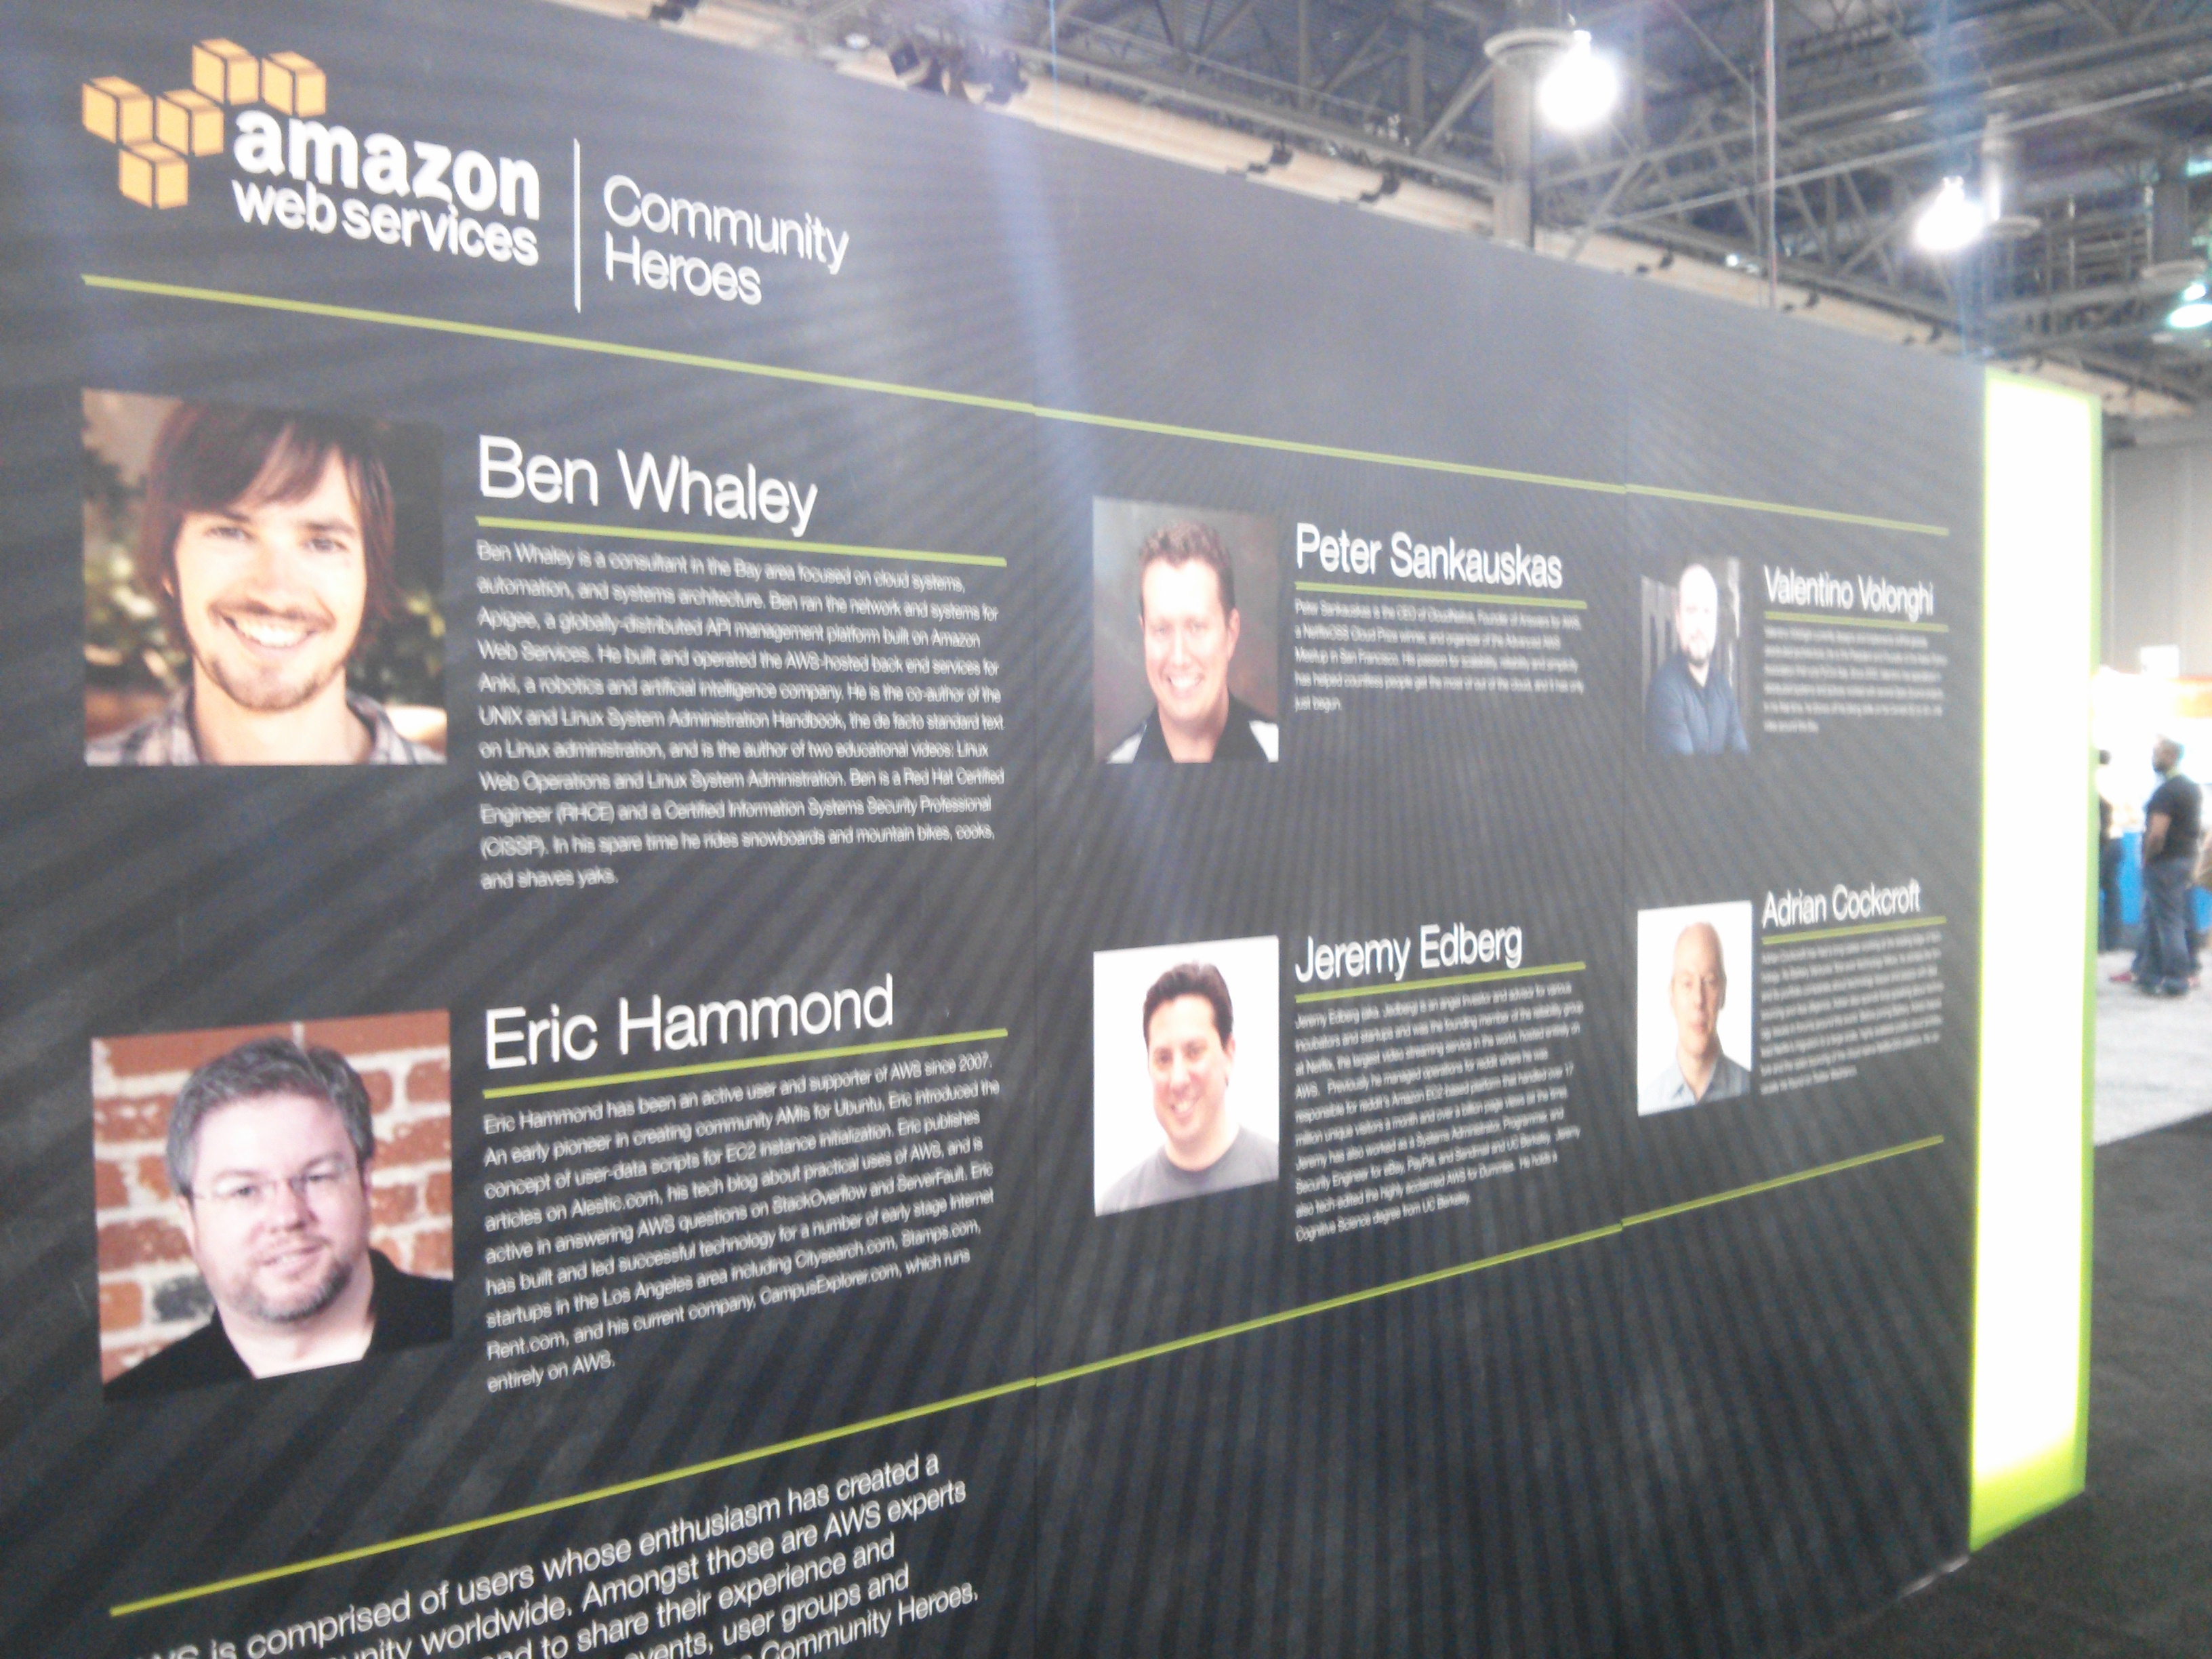 """Amazon Web Services' """"Cloud Heroes."""" Adrian Cockroft used to head up the Netflix cloud team, and Jeremy Edberg does now."""